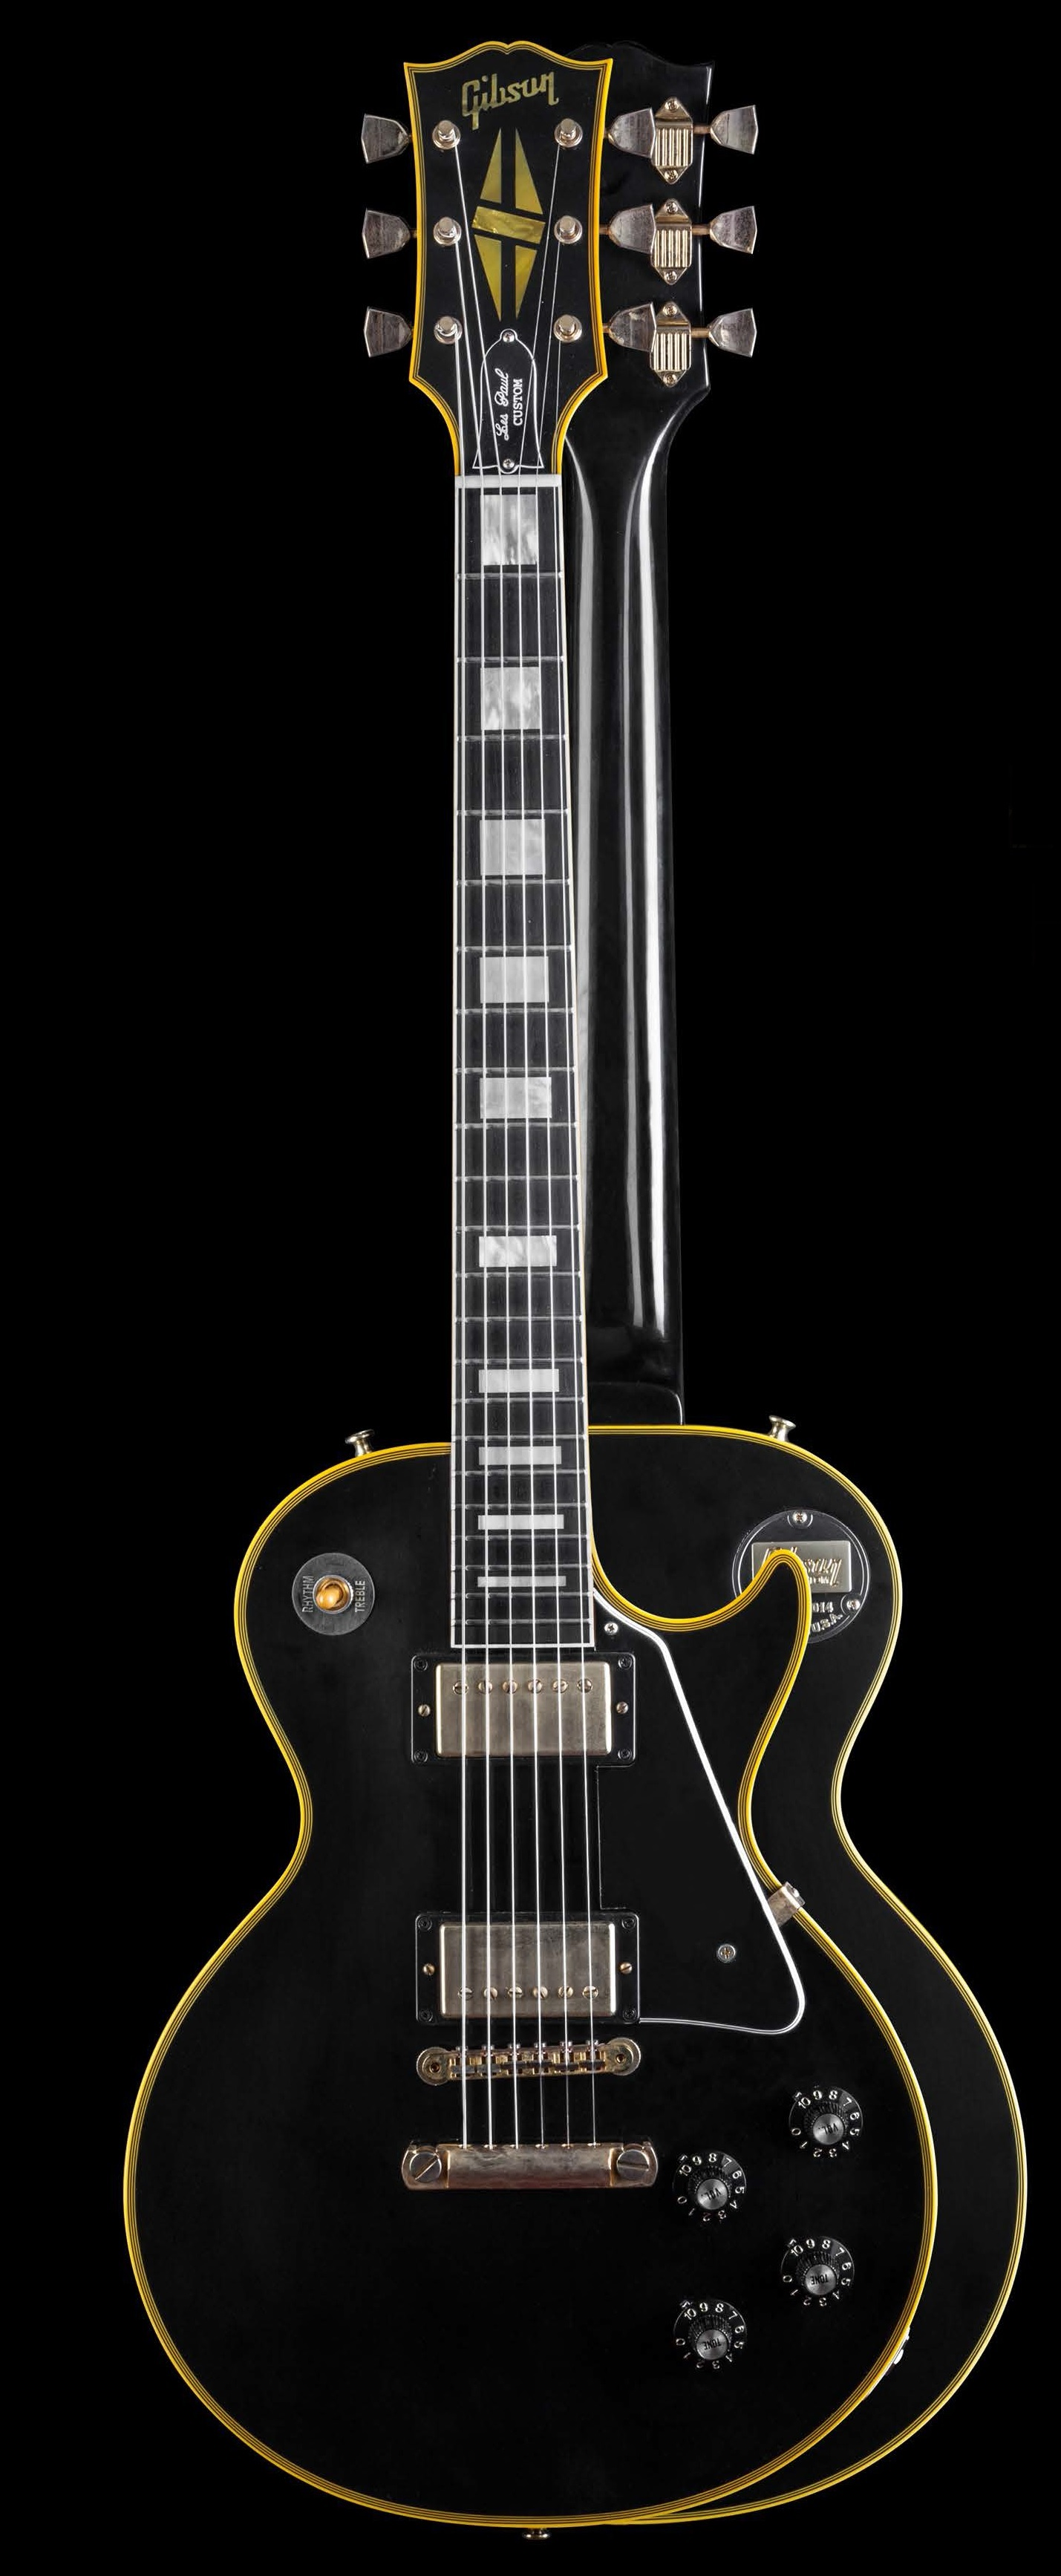 1970 gibson les paul wiring diagram best part of wiring diagram1969 les paul wiring harness wiring diagramgibson releases the 1968 custom, 1974 custom and the